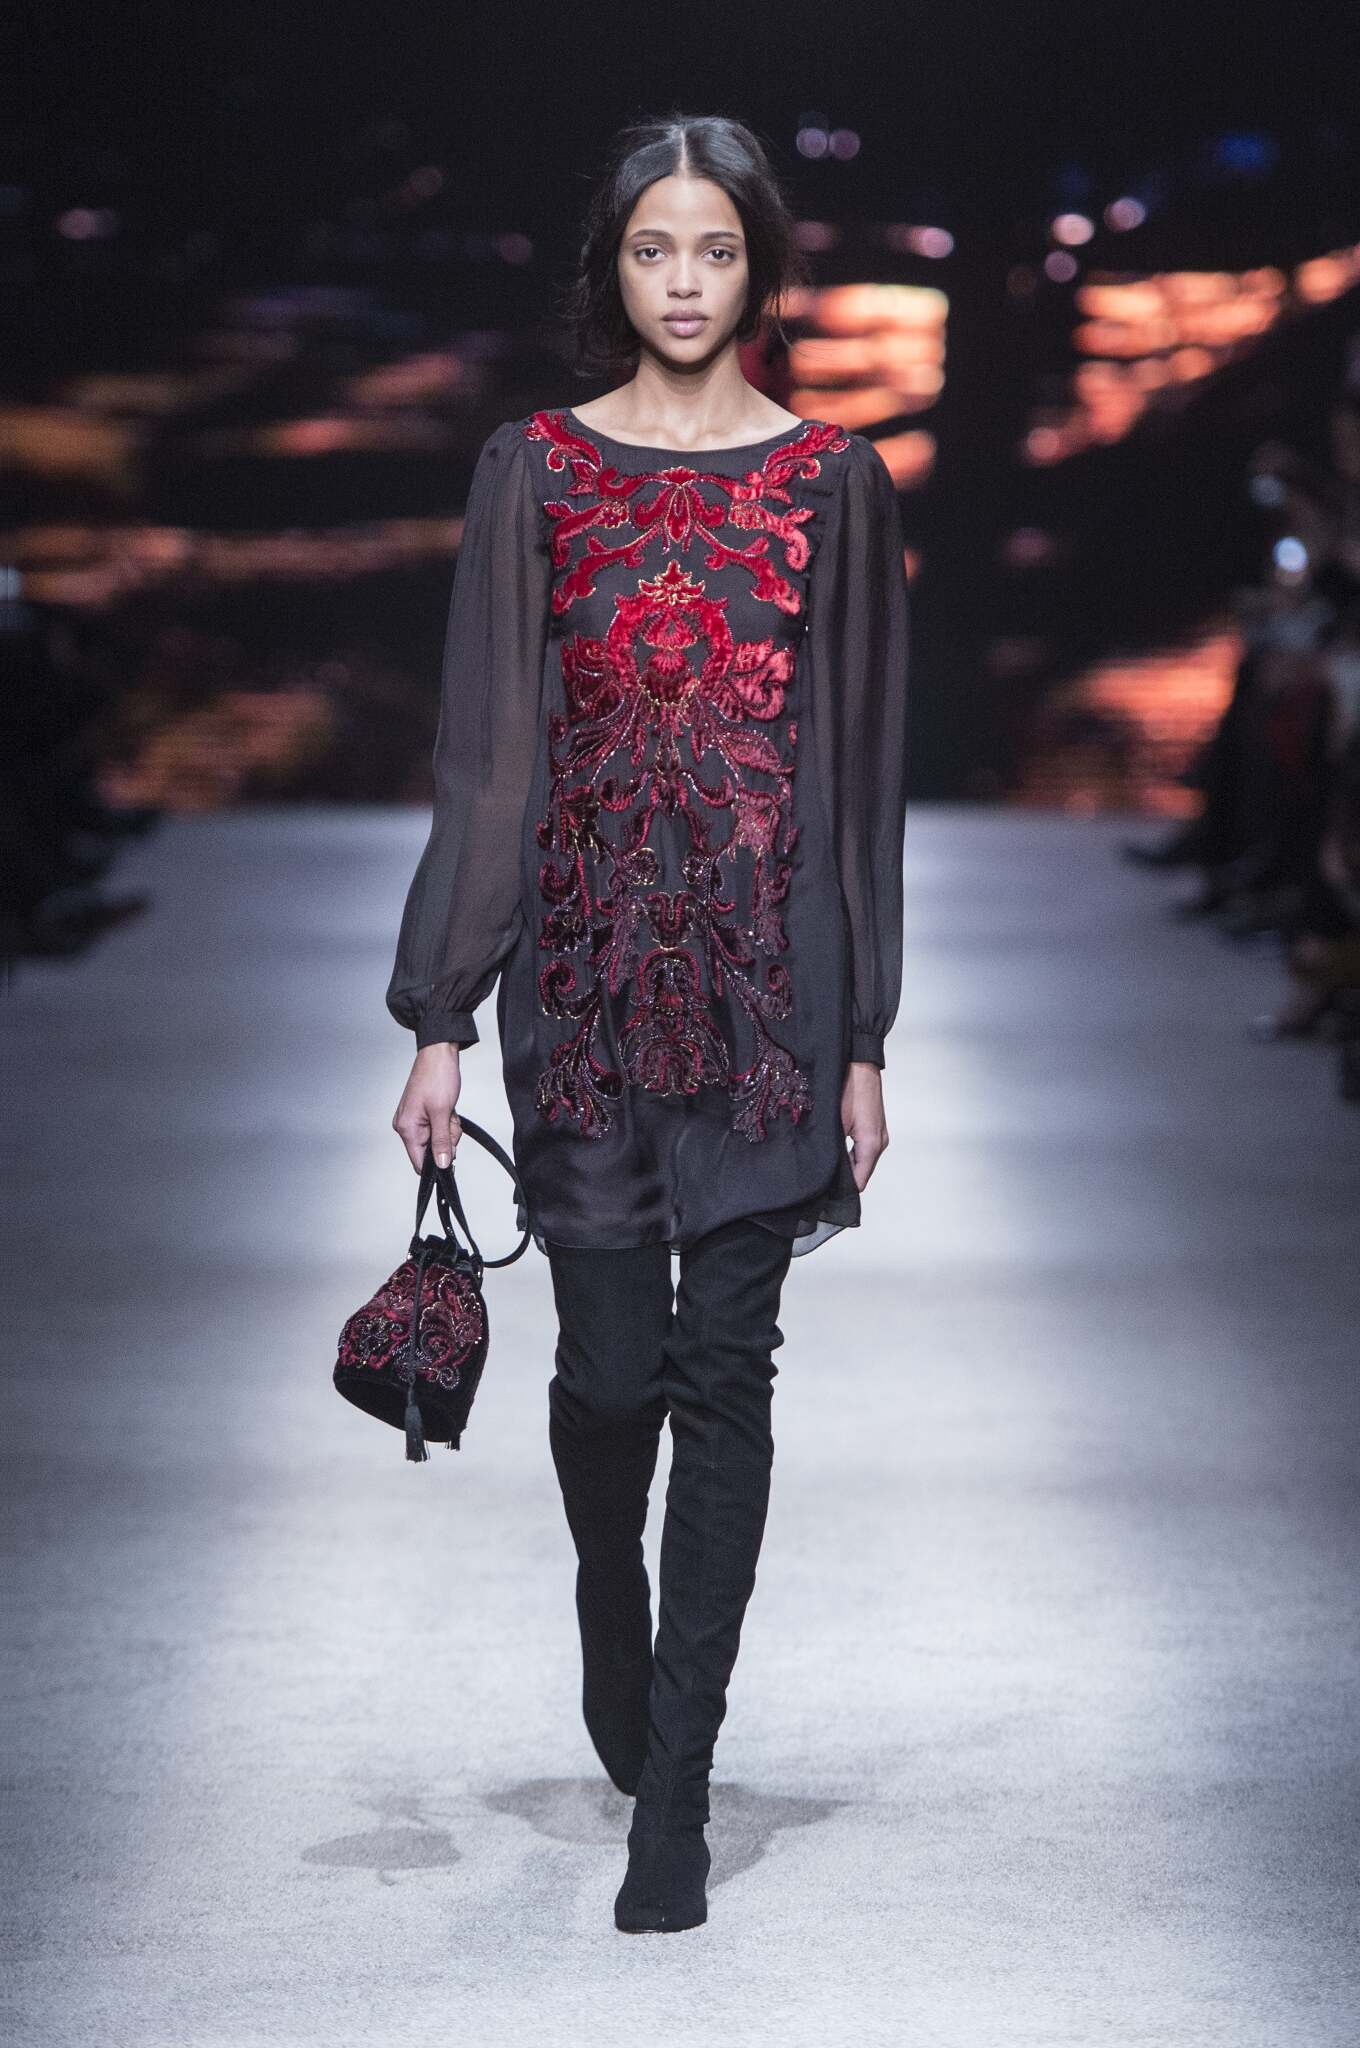 Alberta Ferretti Fall Winter 2015 16 Women's Collection Milan Fashion Week